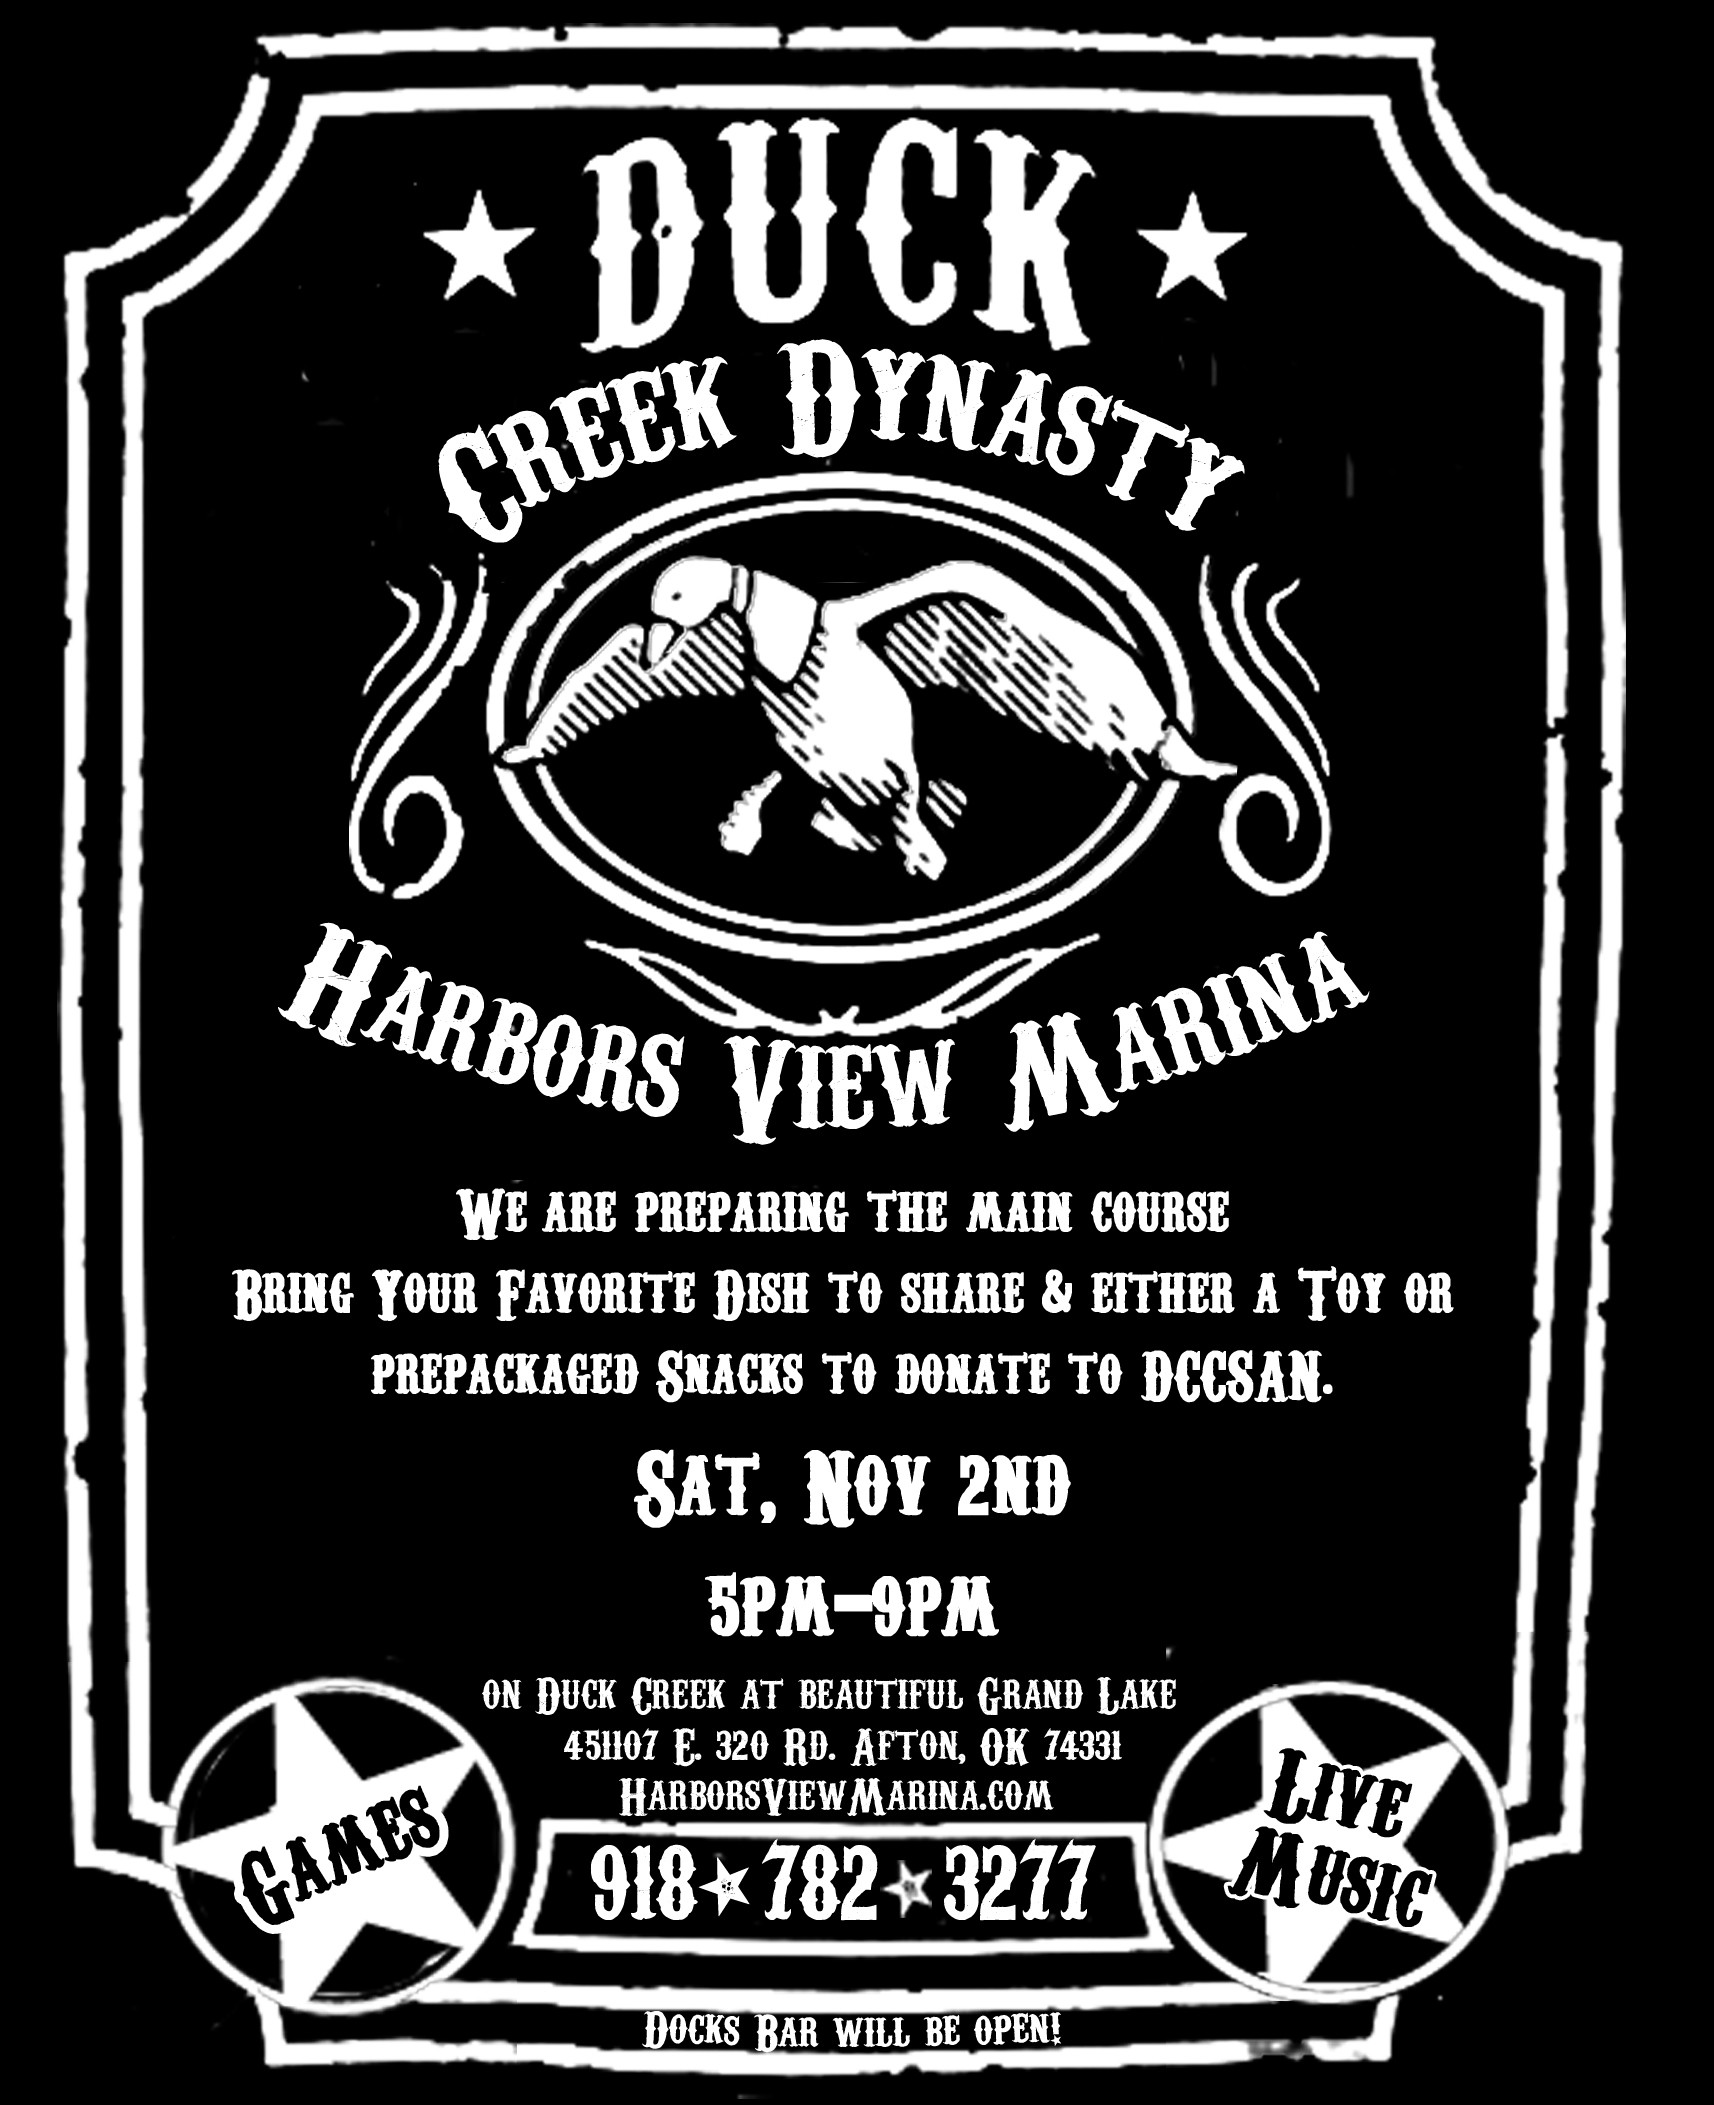 AFTON, OK On opening day of duck hunting season, Harbors View Marina will  be hosting a Duck Creek Dynasty party on Nov. 2nd from 5-9 pm.